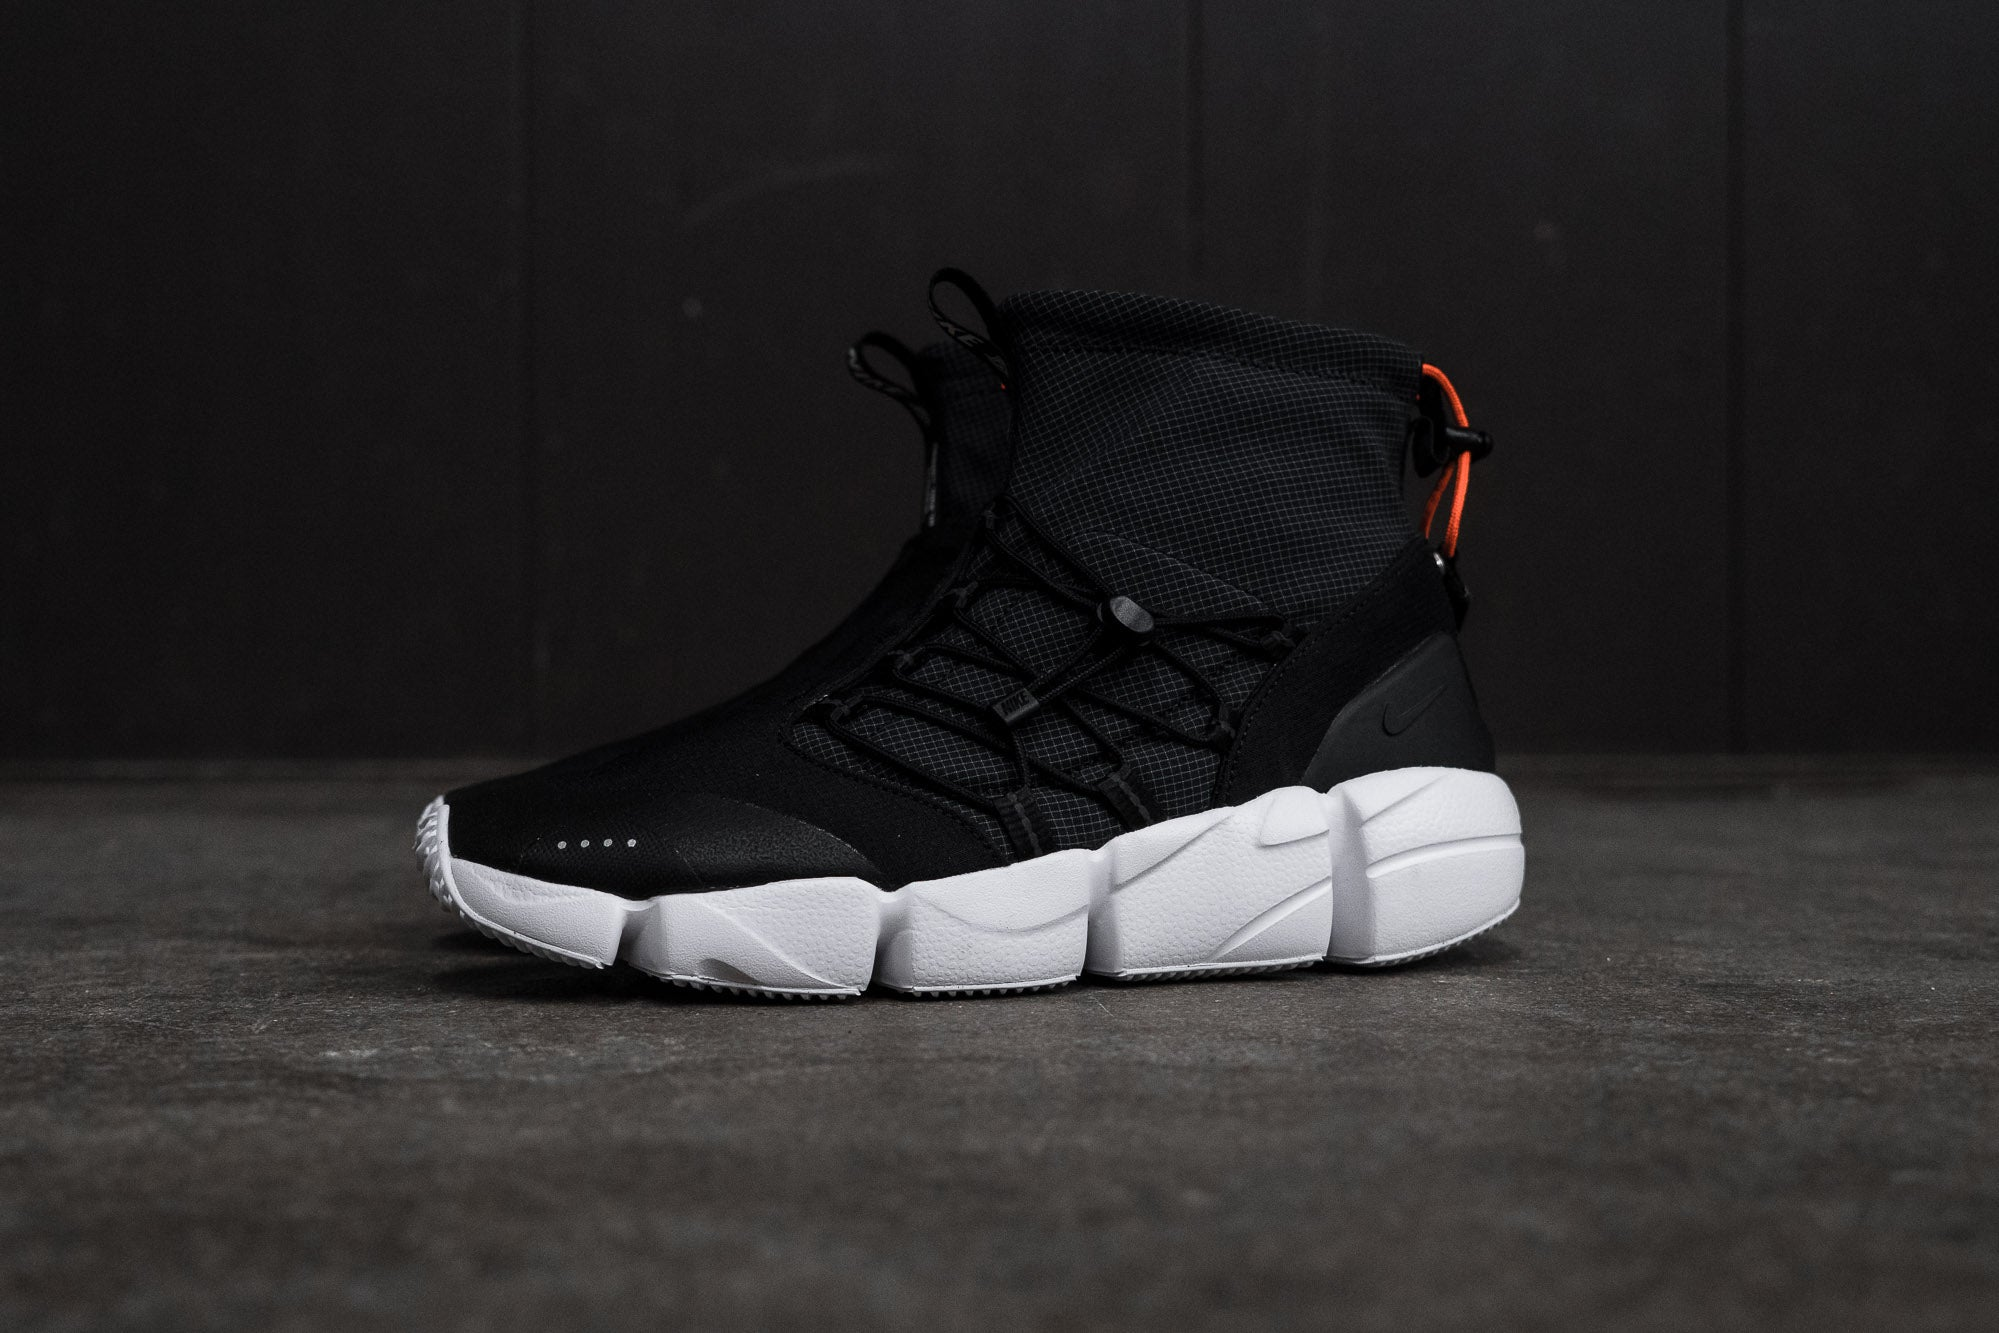 Nike Air Footscape Utility Mid DM